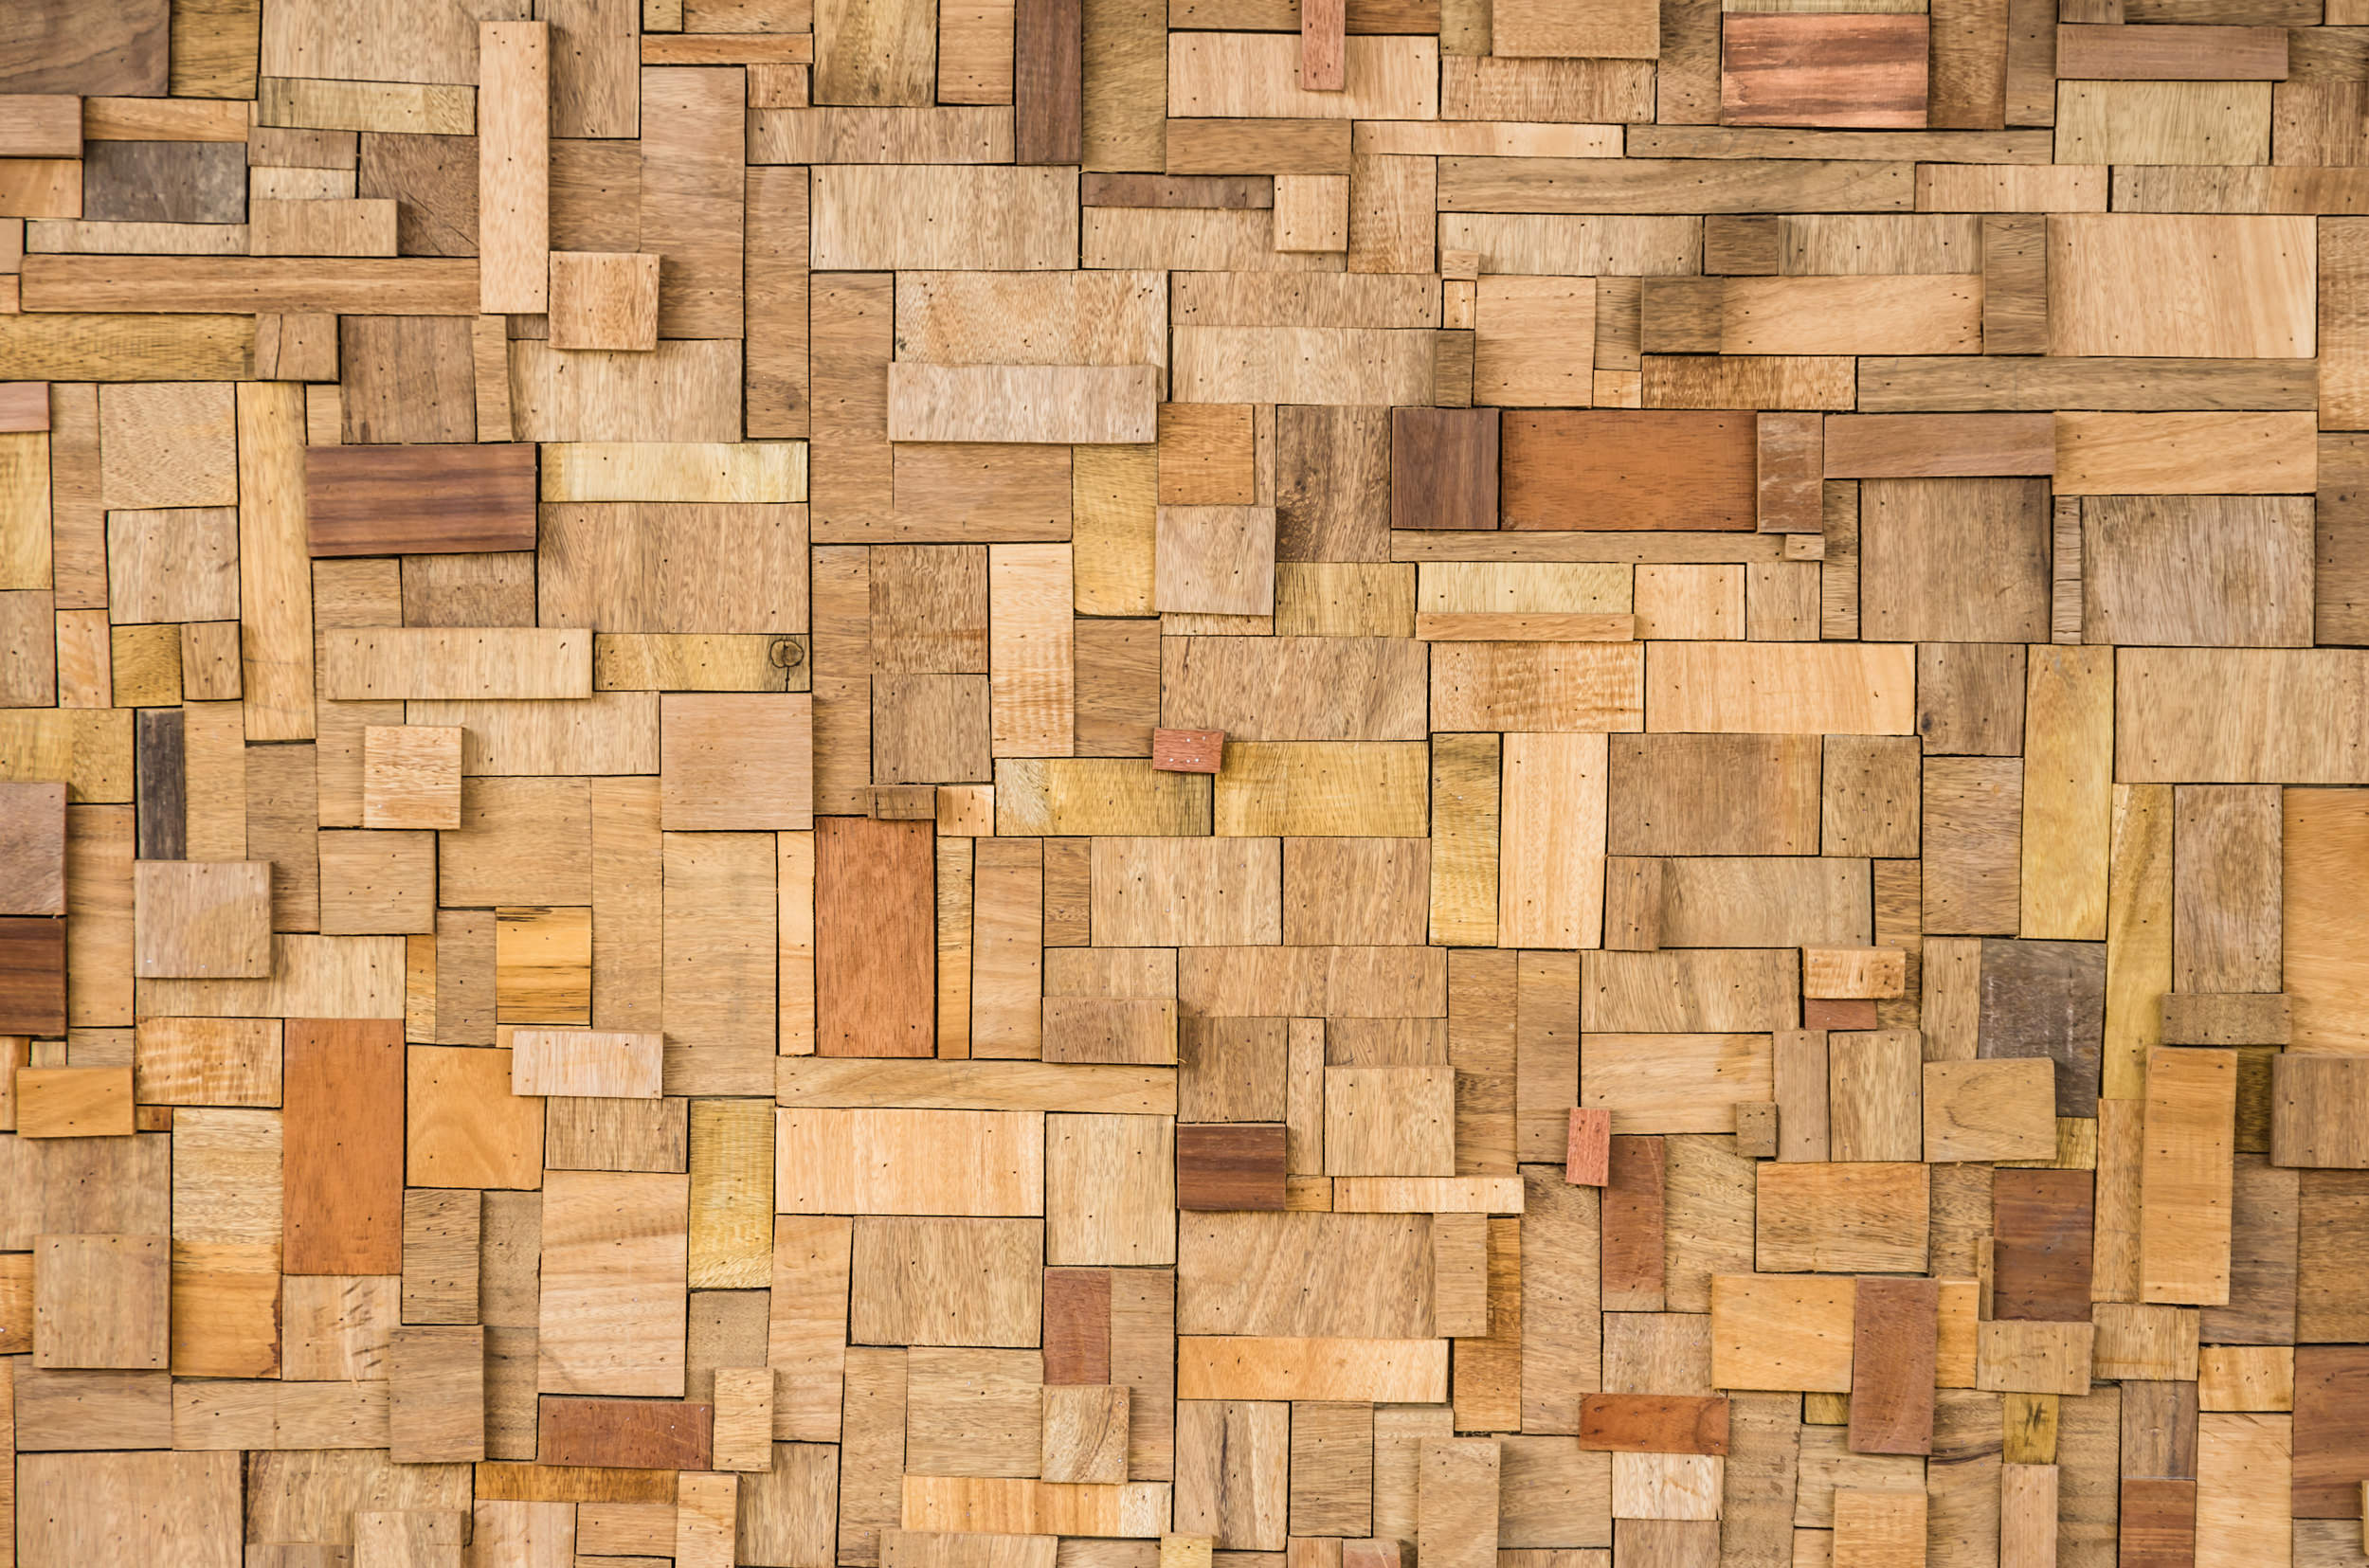 21 Wooden Backgrounds Wallpapers Images FreeCreatives